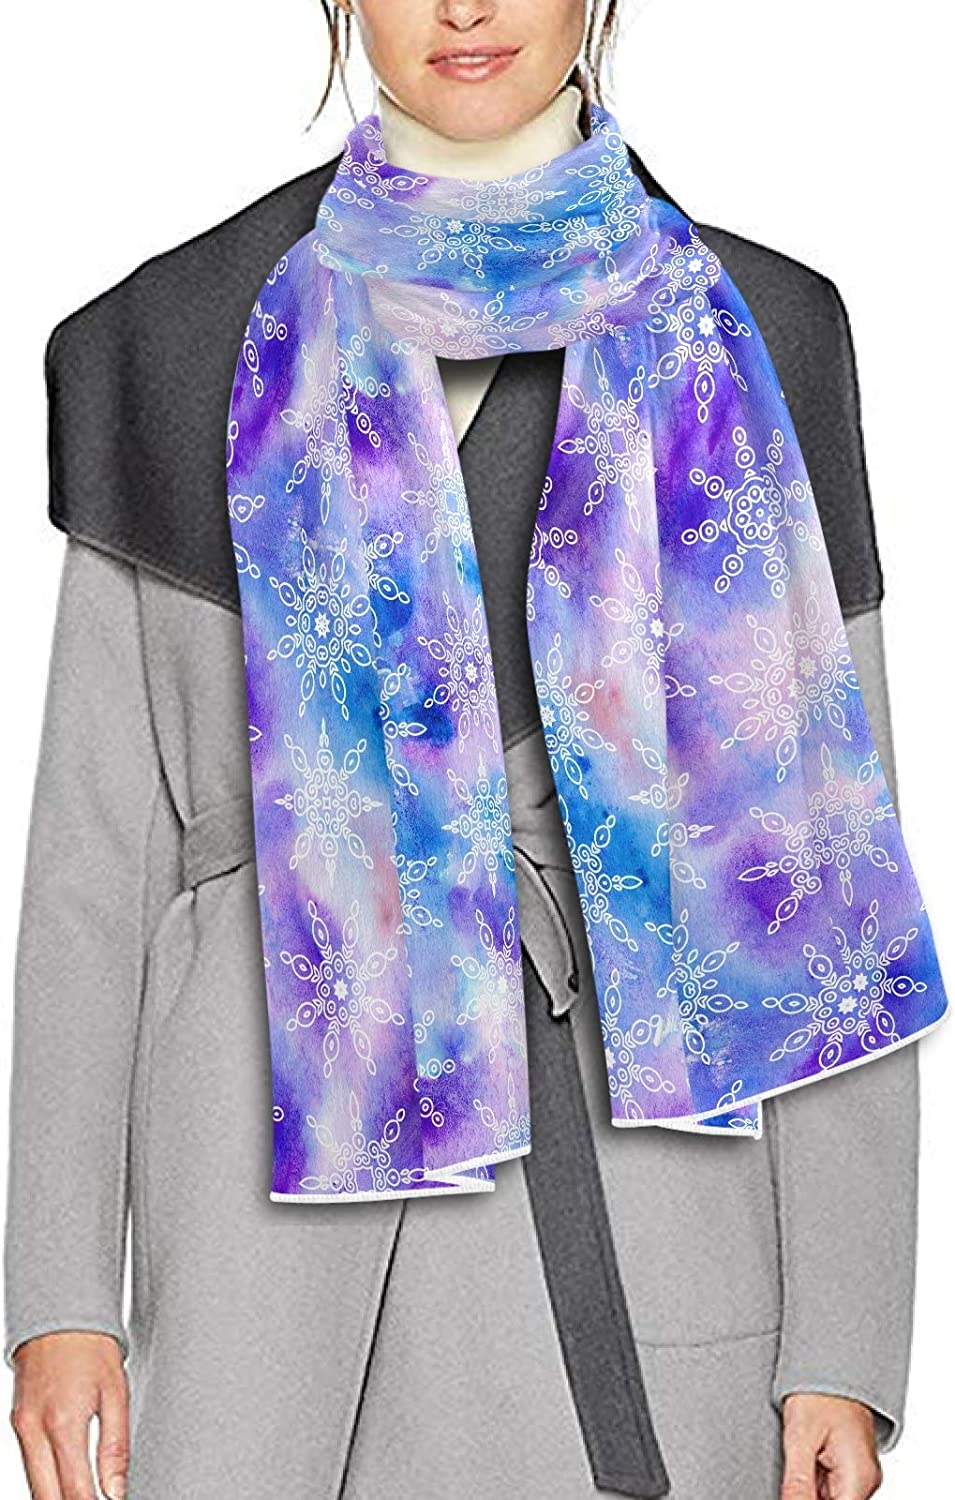 Scarf for Women and Men Snowflakes Blanket Shawl Scarf wraps Warm soft Winter Long Scarves Lightweight